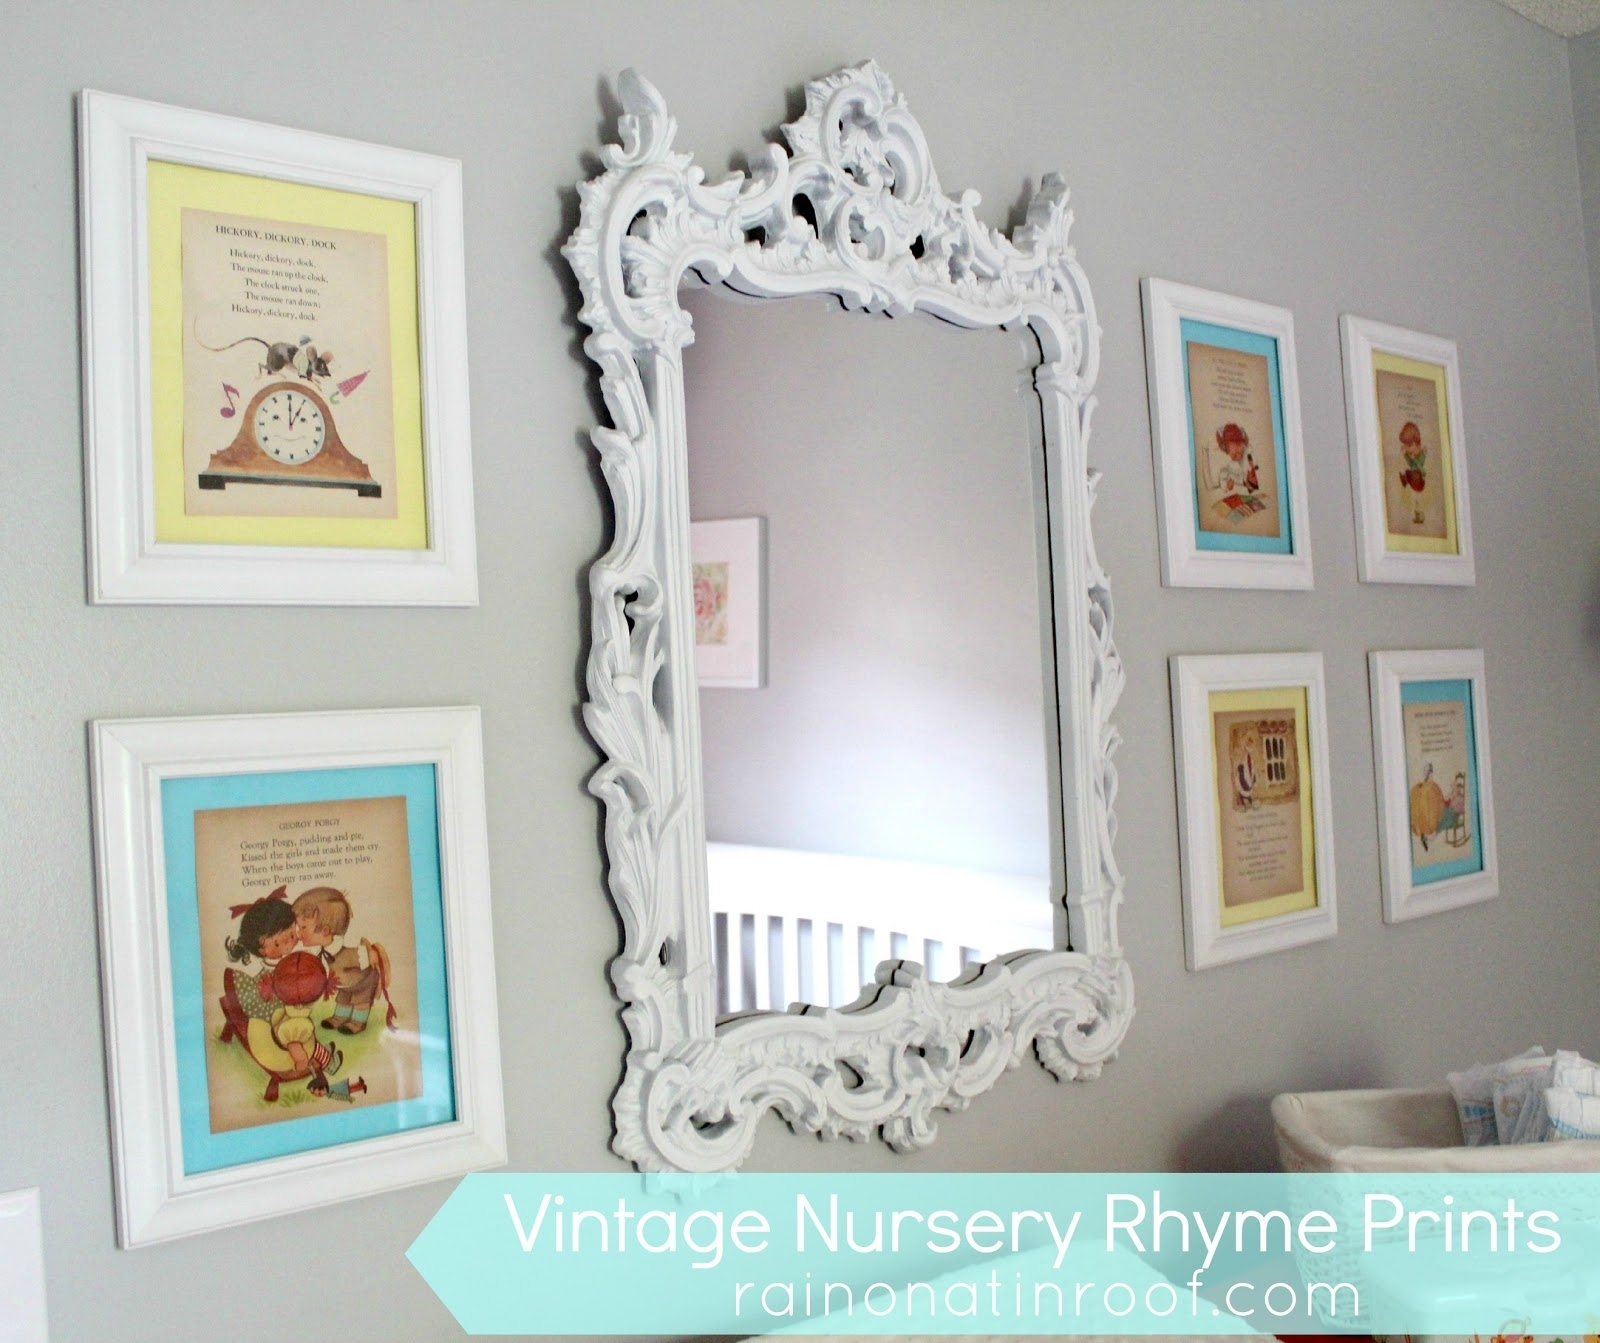 Diy Vintage Nursery Rhyme Prints Intended For Latest Cheap Framed Wall Art (View 5 of 20)